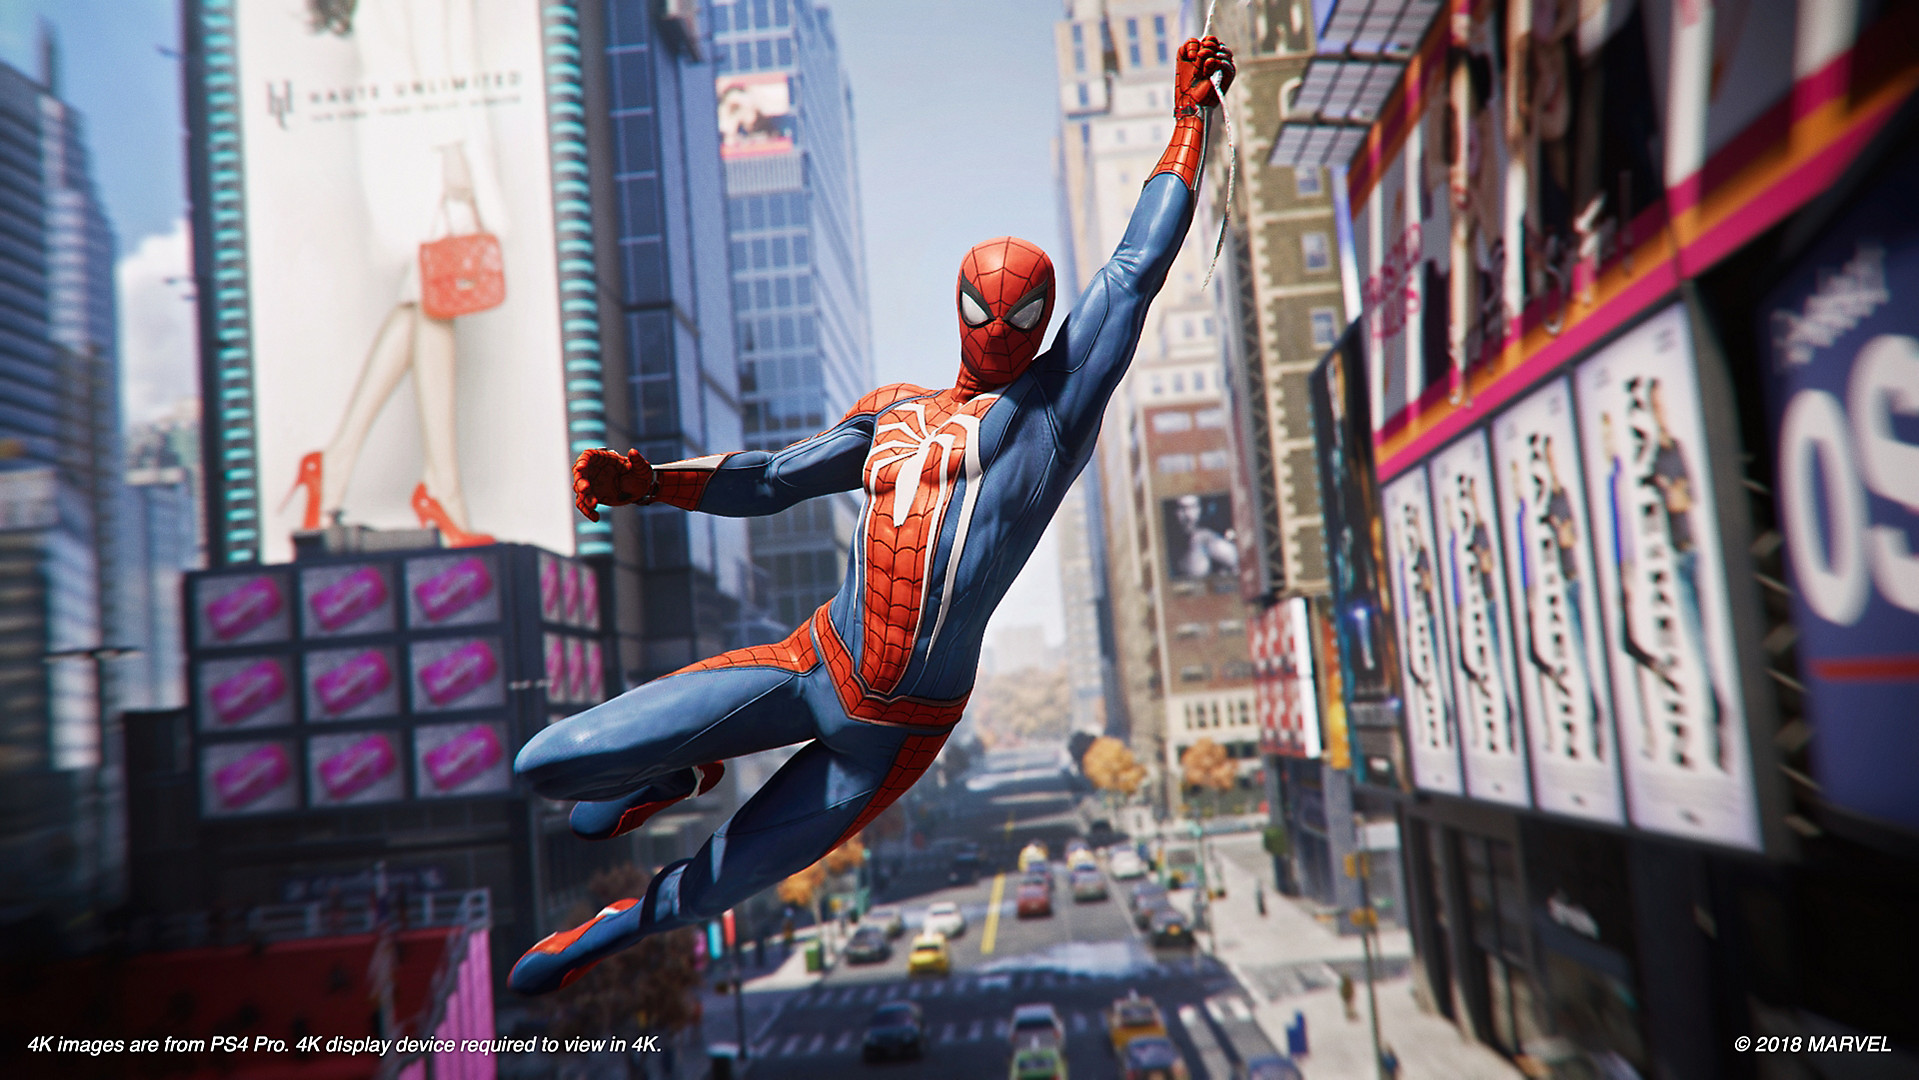 Spider-Man PS4 at E3 Image 1